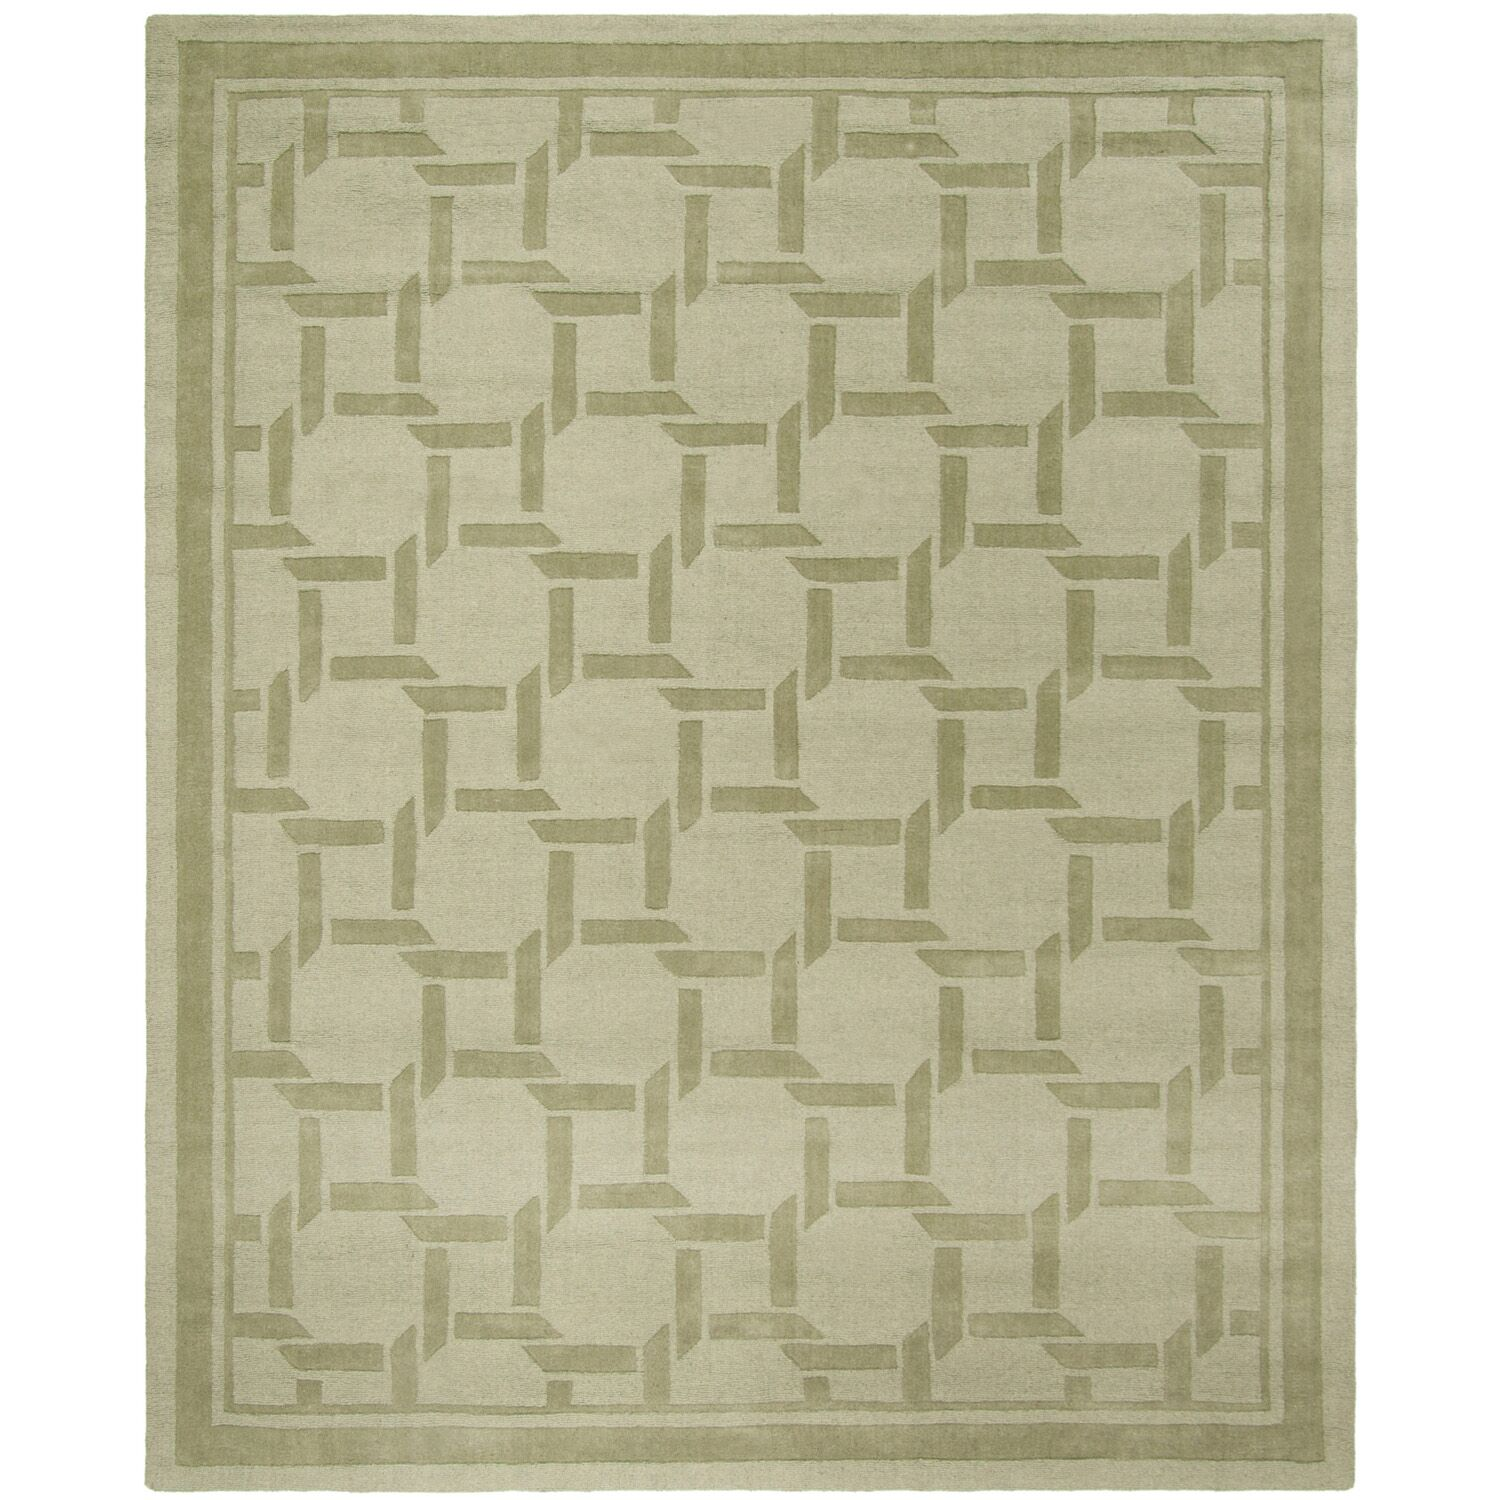 Resort Hand-Loomed Pumpkin Seed Area Rug Rug Size: Rectangle 8' x 10'